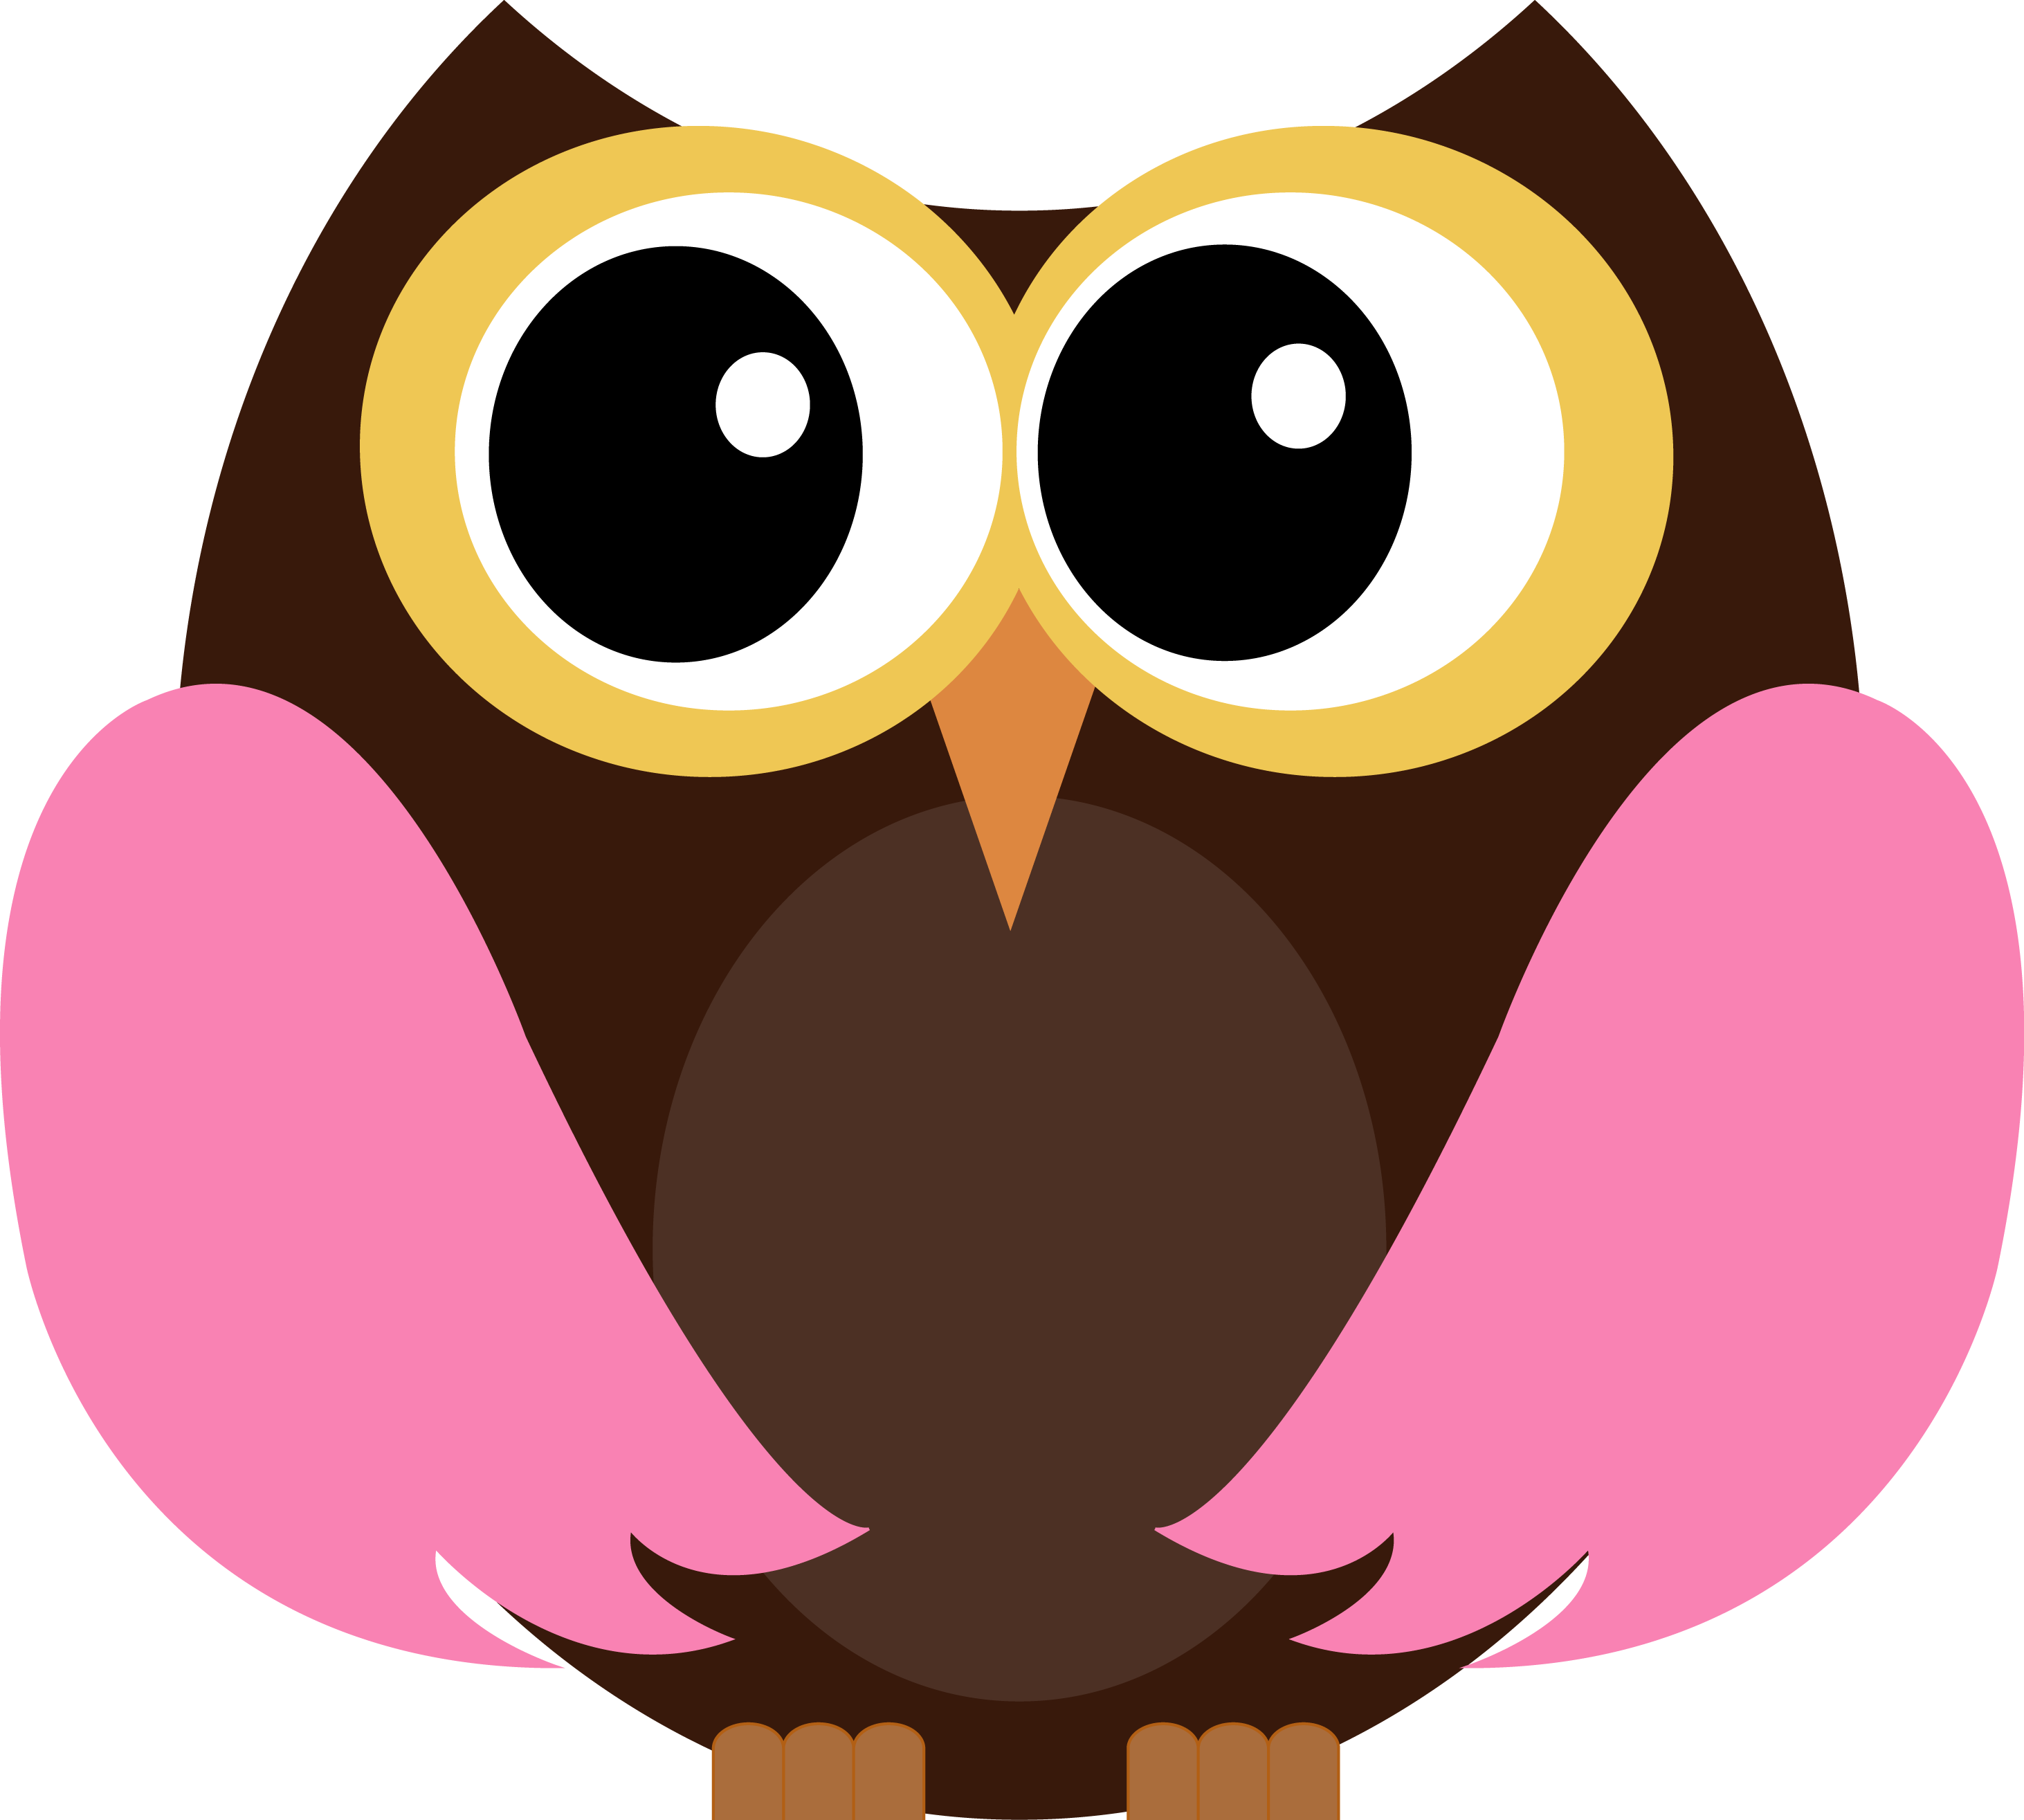 Pinterest whimsical clip art. Foot clipart owl